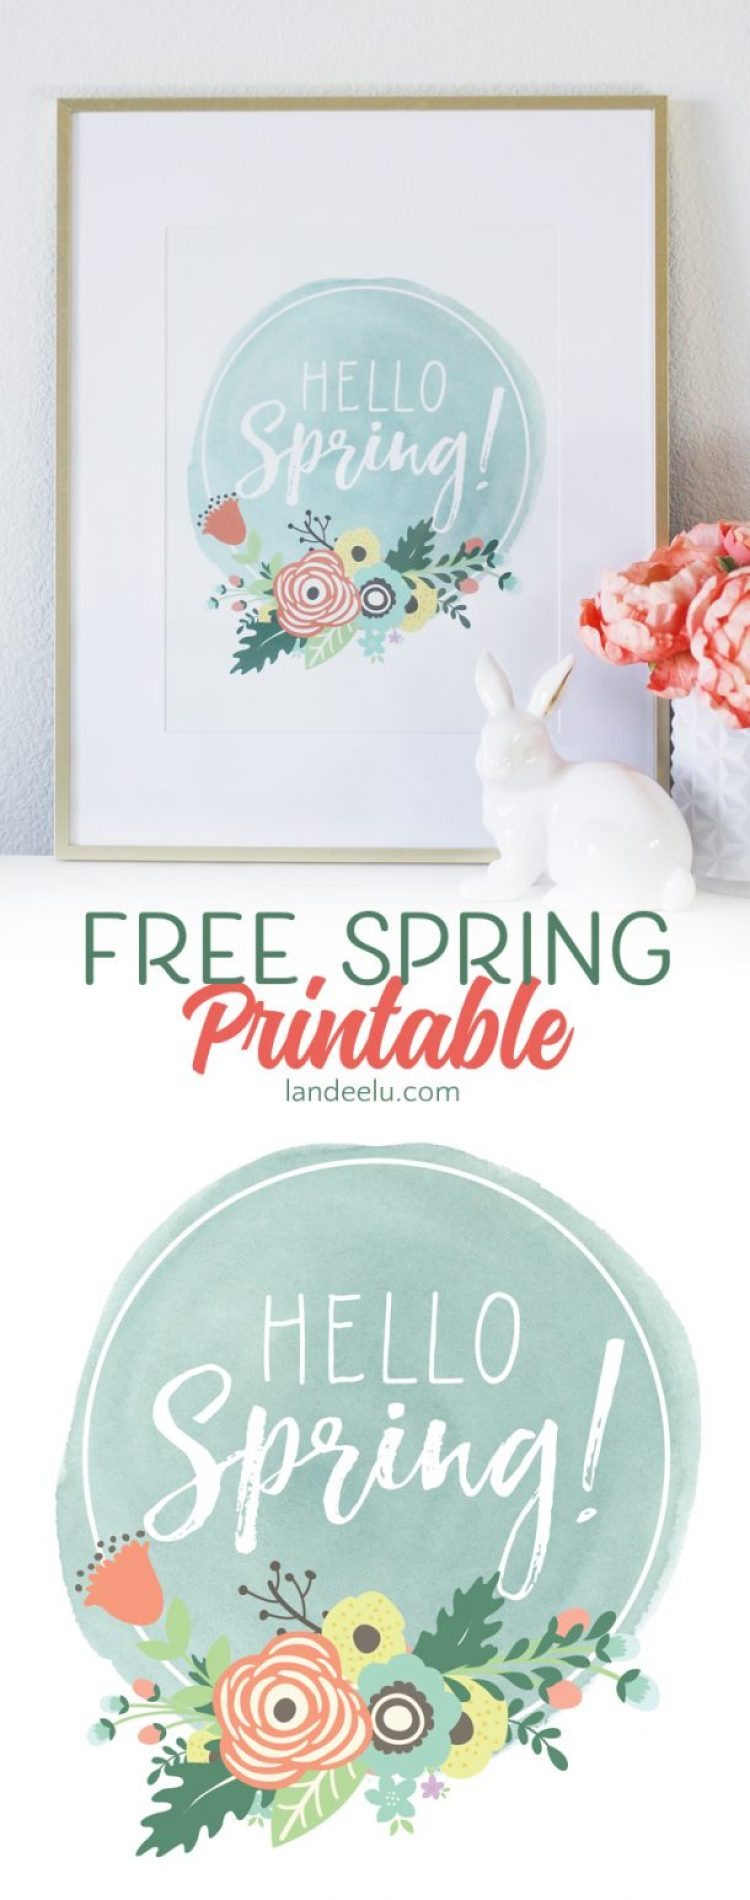 This is a darling free spring printable! I'm printing this and putting it in my entry!